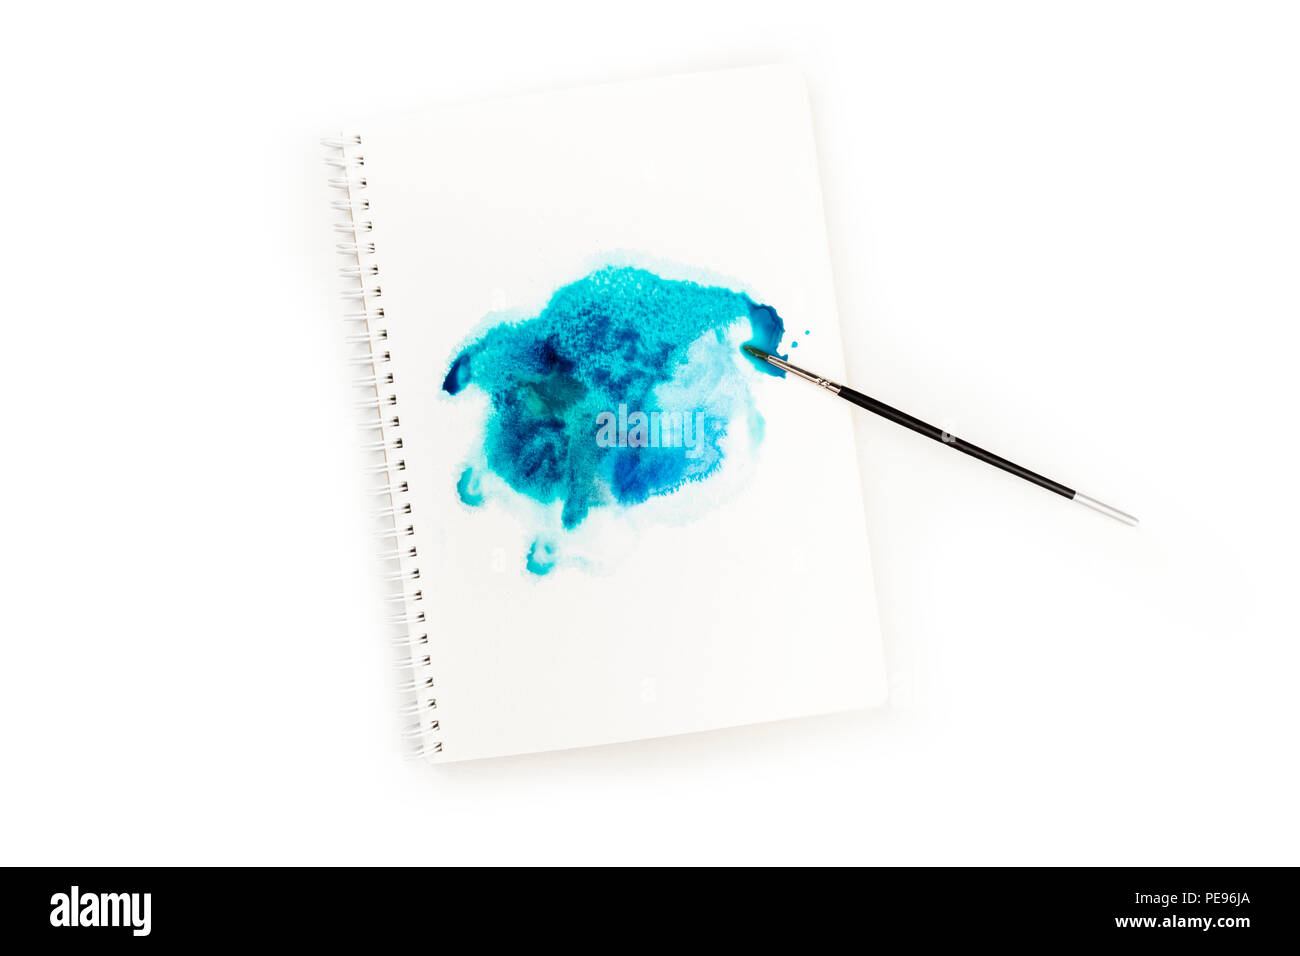 An overhead photo of a watercolor stain in a sketchbook with a brush